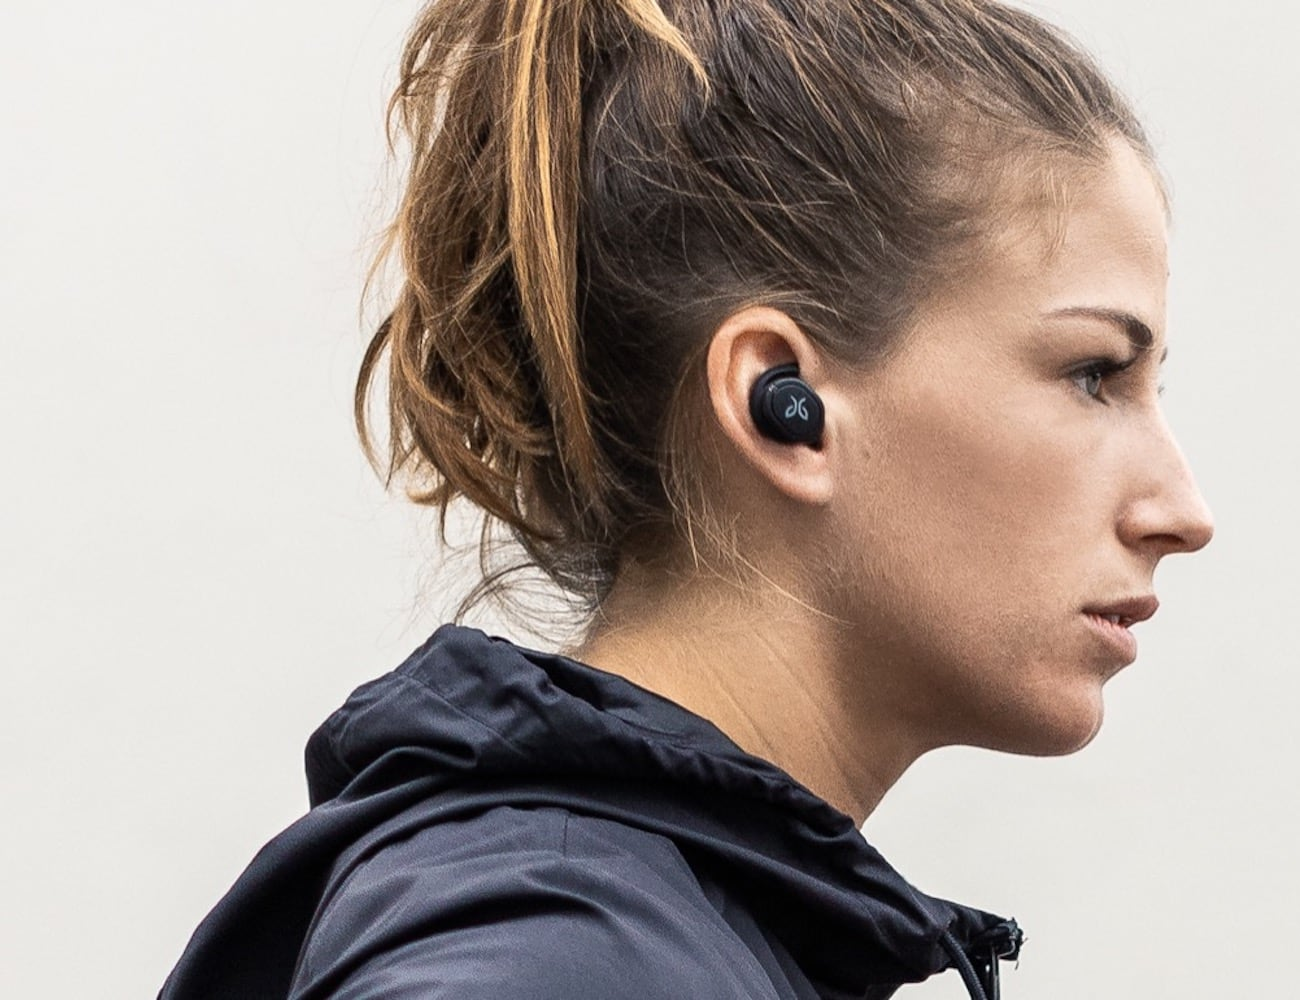 10 Smart gadgets for all the sports enthusiasts